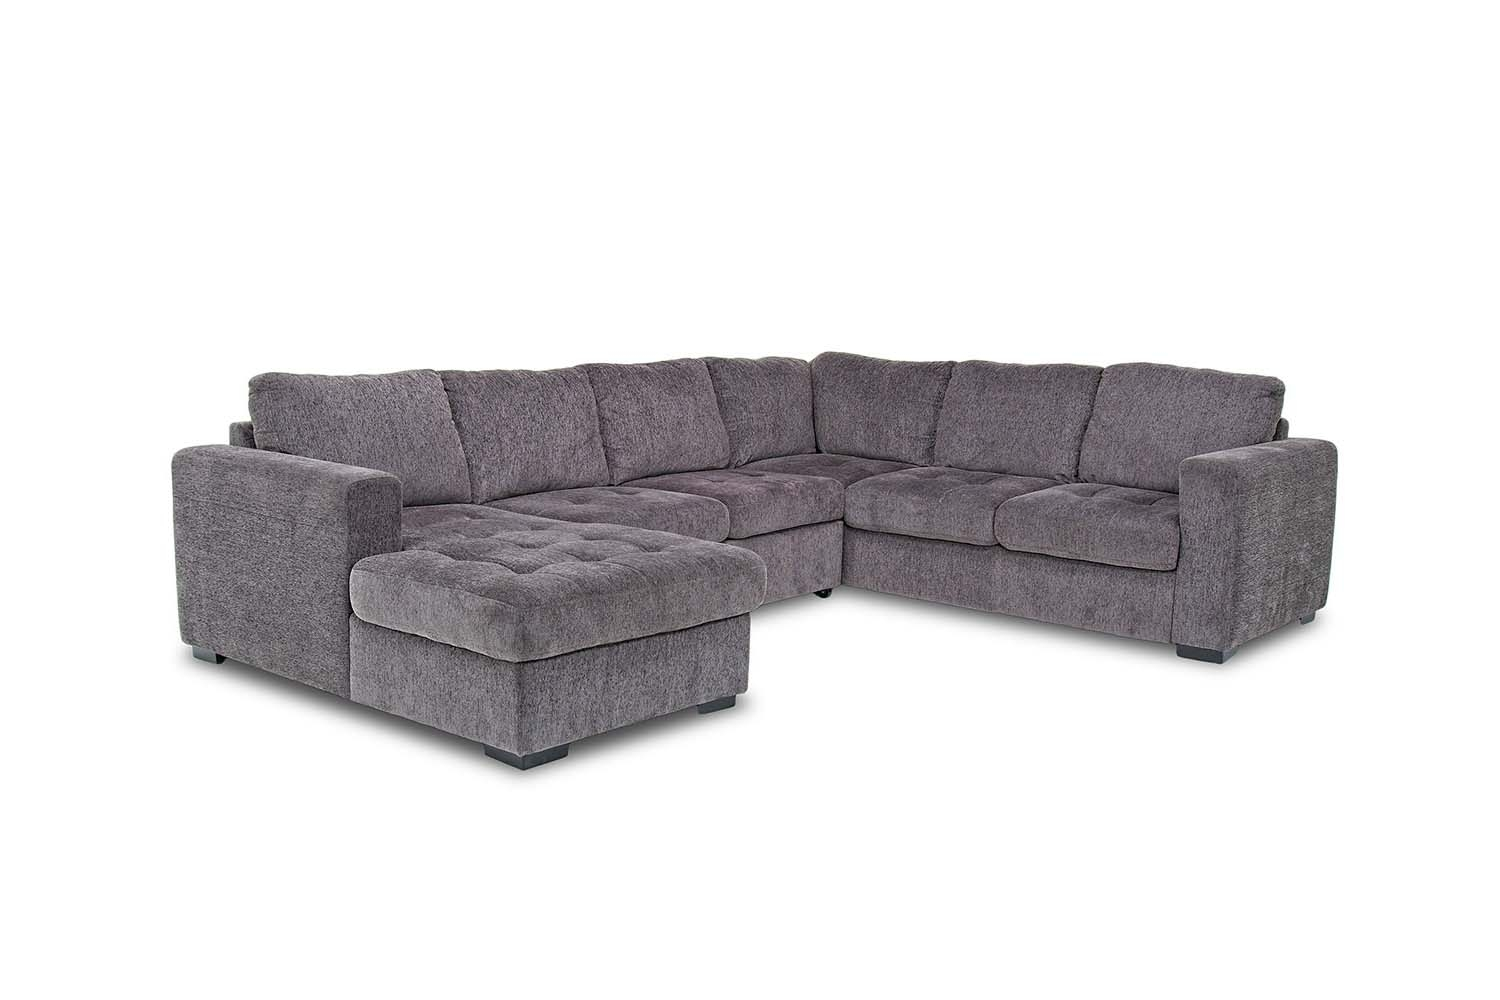 Furniture Village Moreno Sofa West Coast S Home Furniture Store Mor Furniture For Less